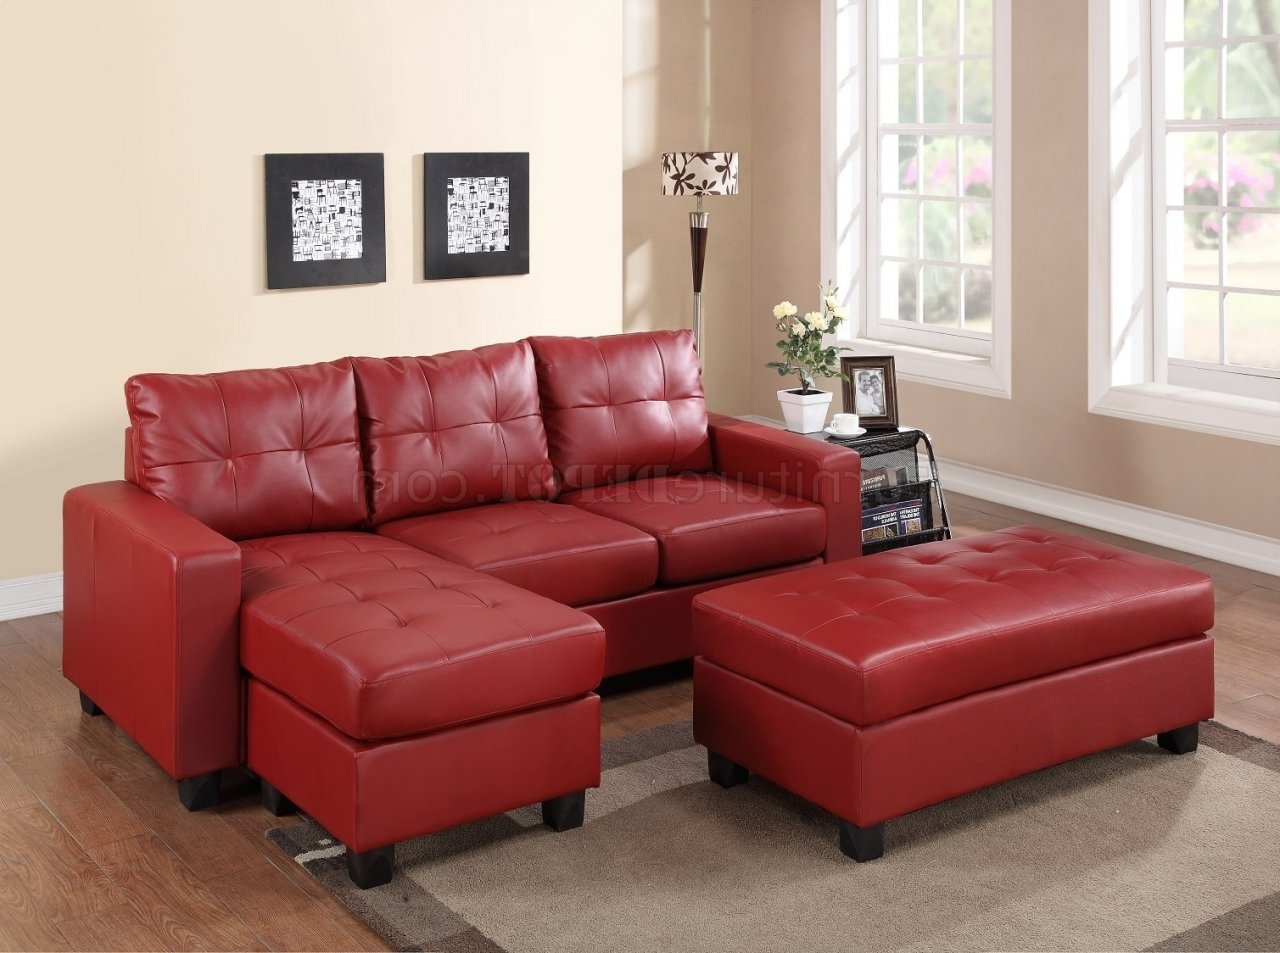 Famous Red Sectional Sofas In 2511 Sectional Sofa Set In Red Bonded Leather Match Pu (View 9 of 15)